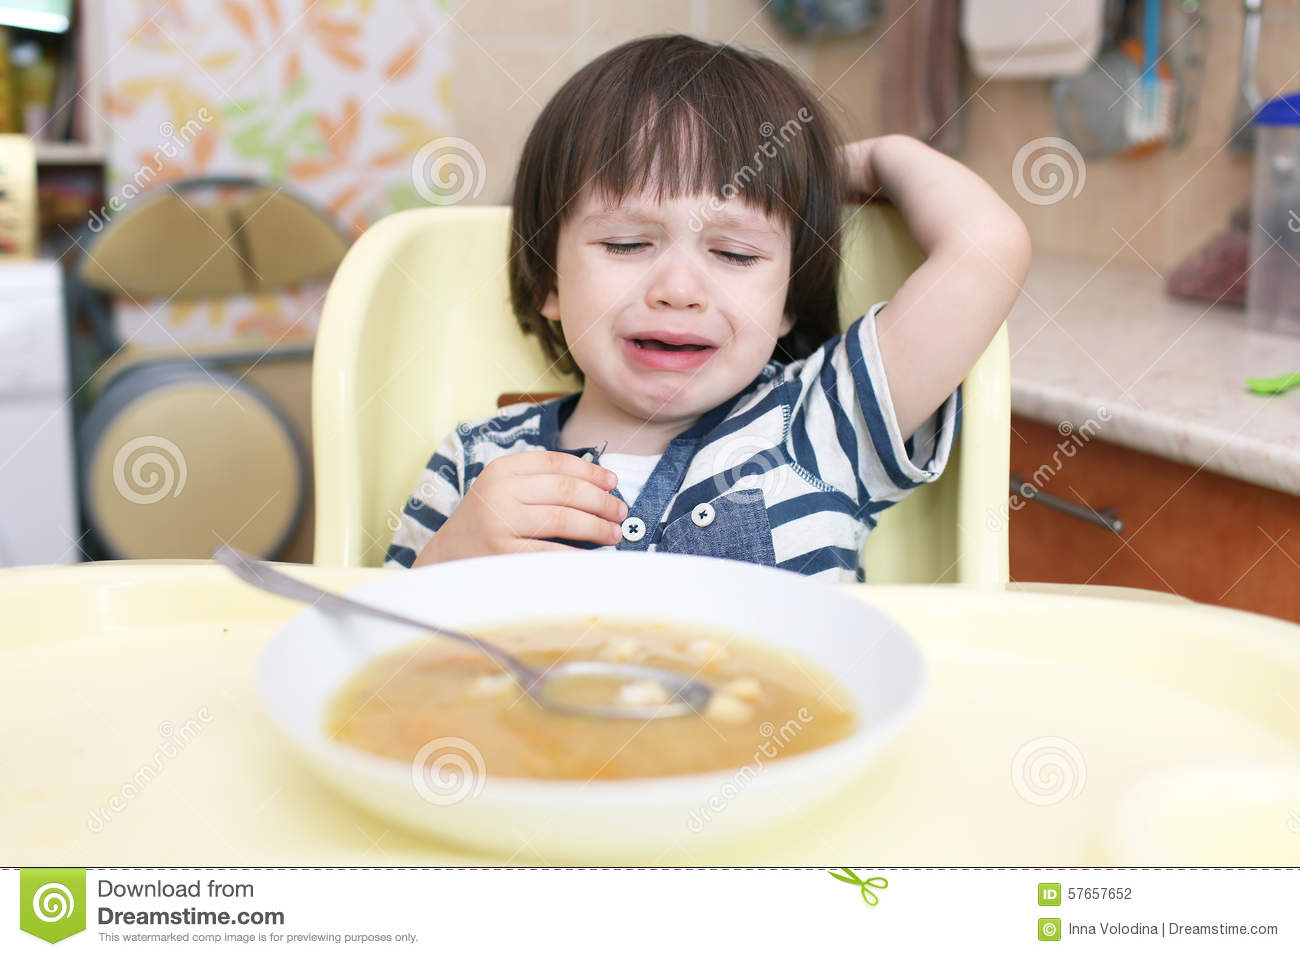 People Dont Eat The Food In The Soup